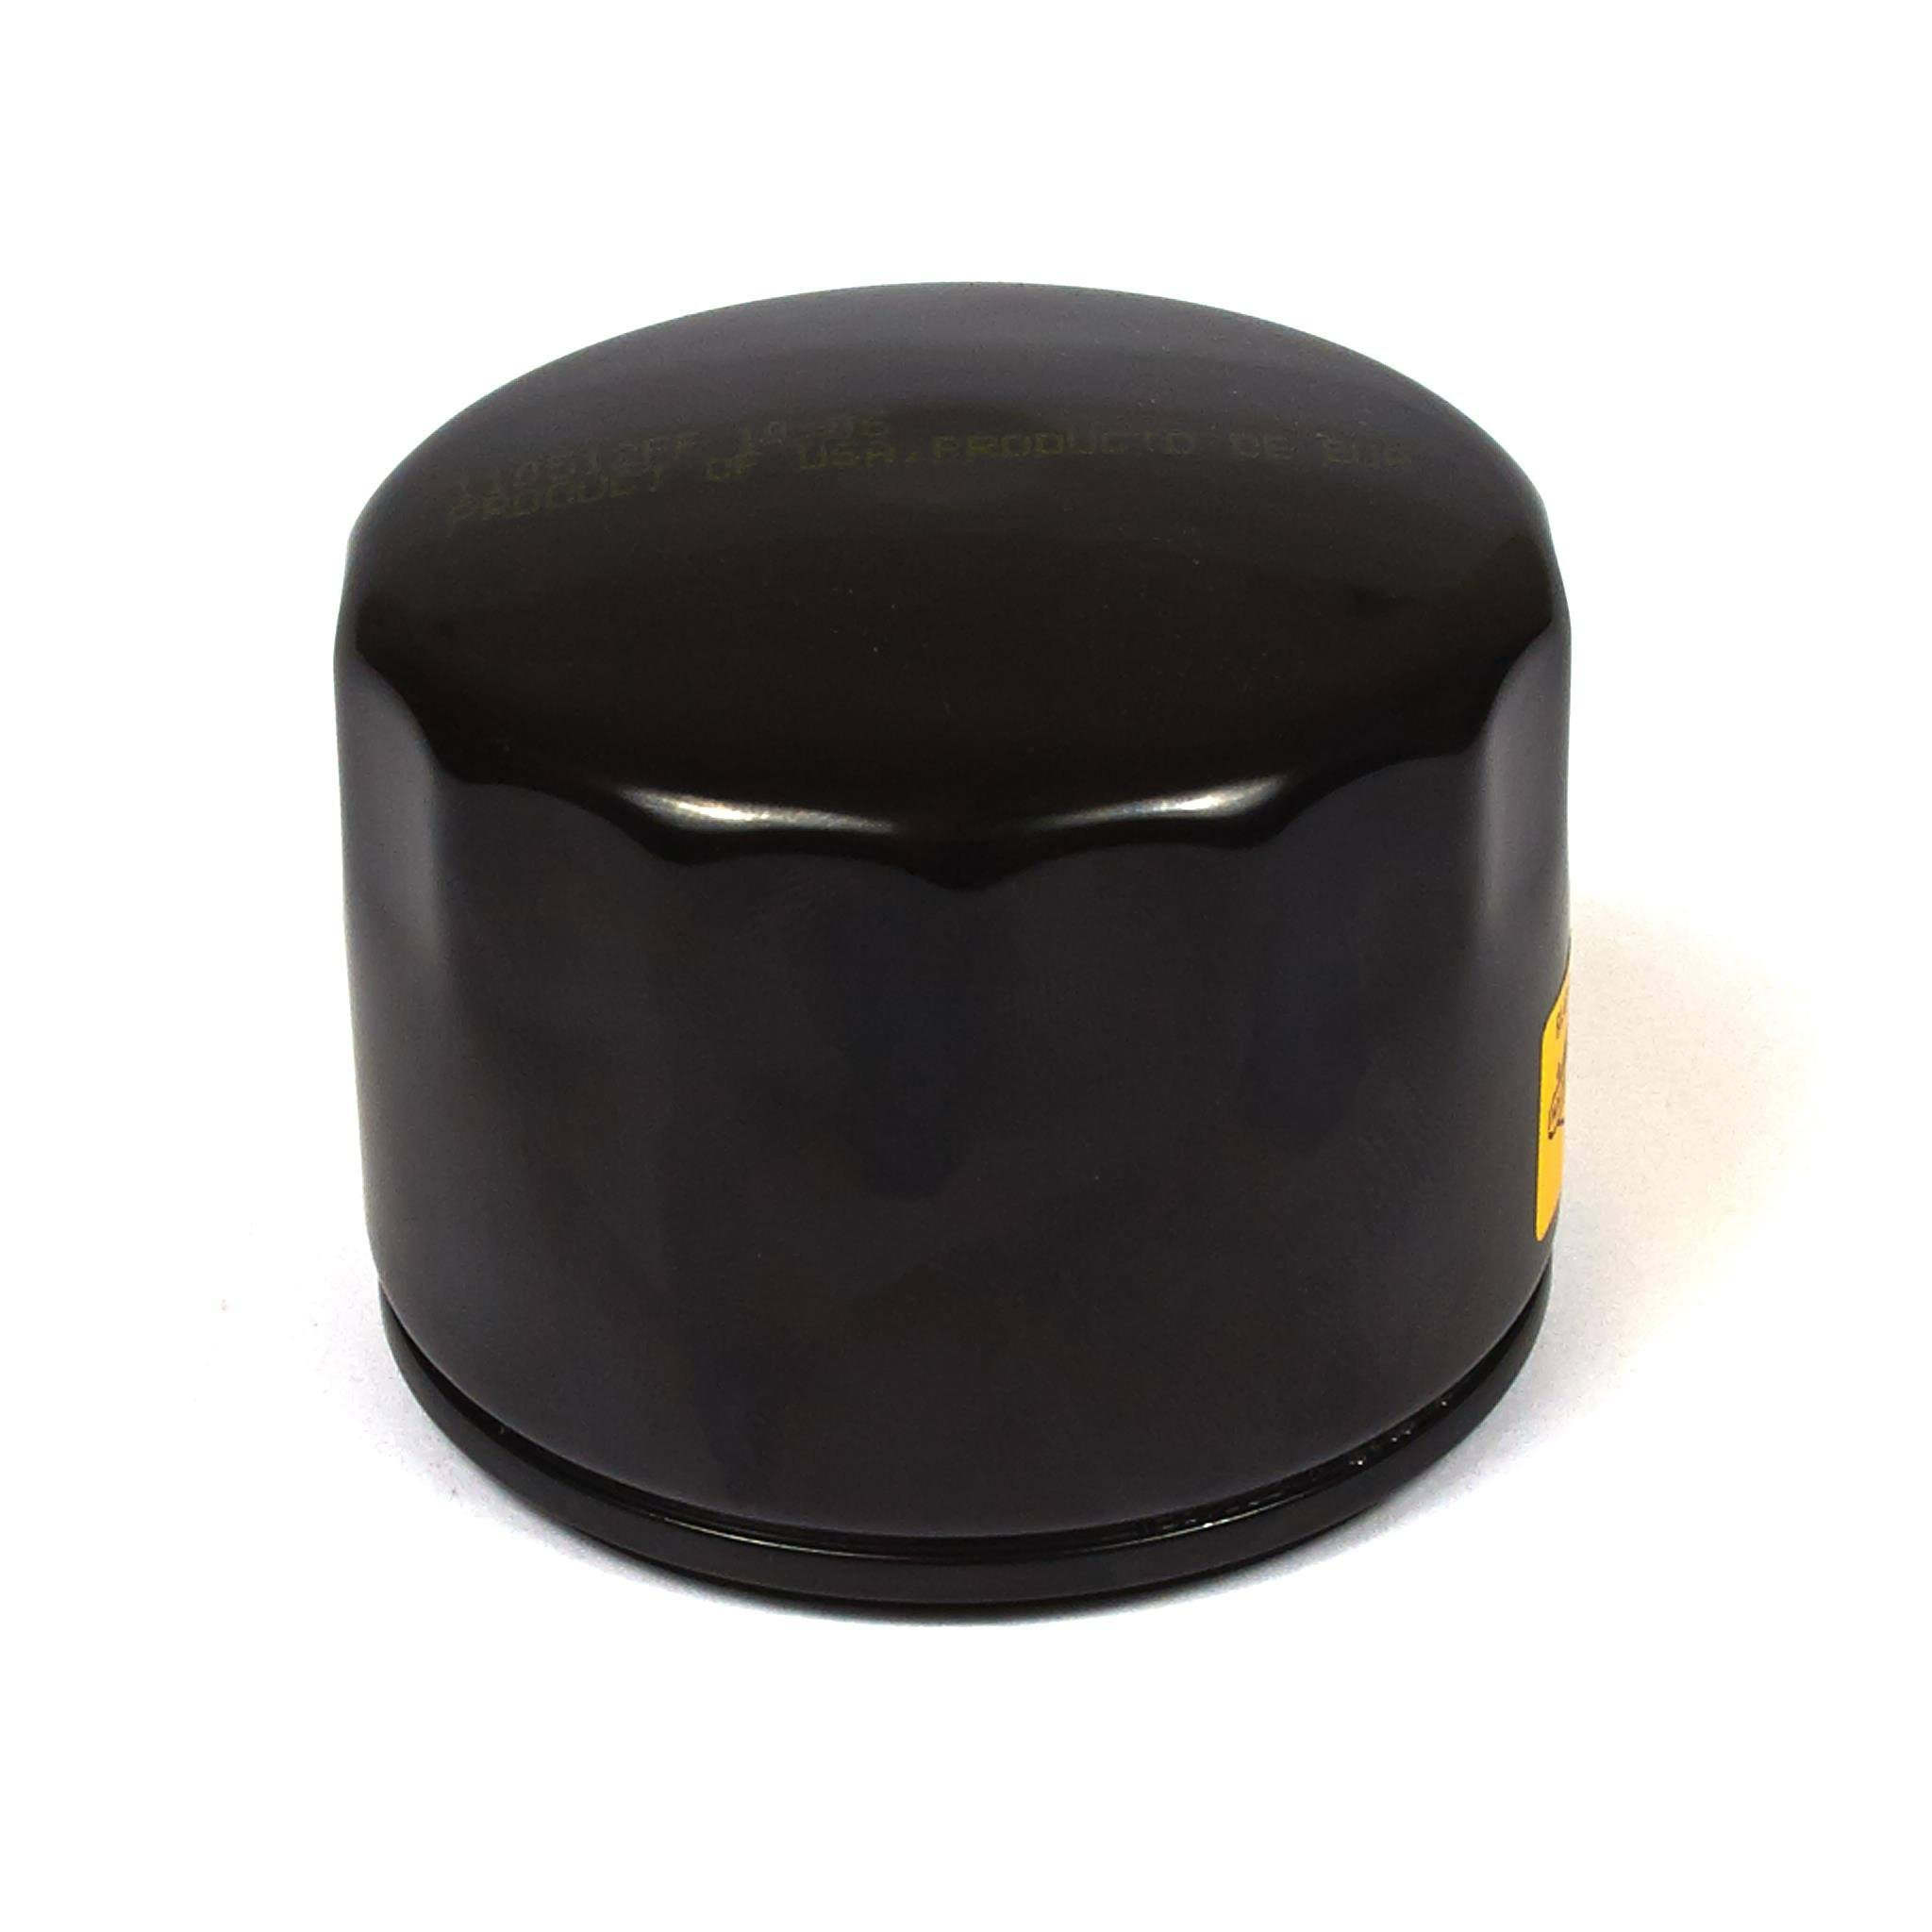 Briggs & Stratton 842921 Oil Filter - for Big Block Engines